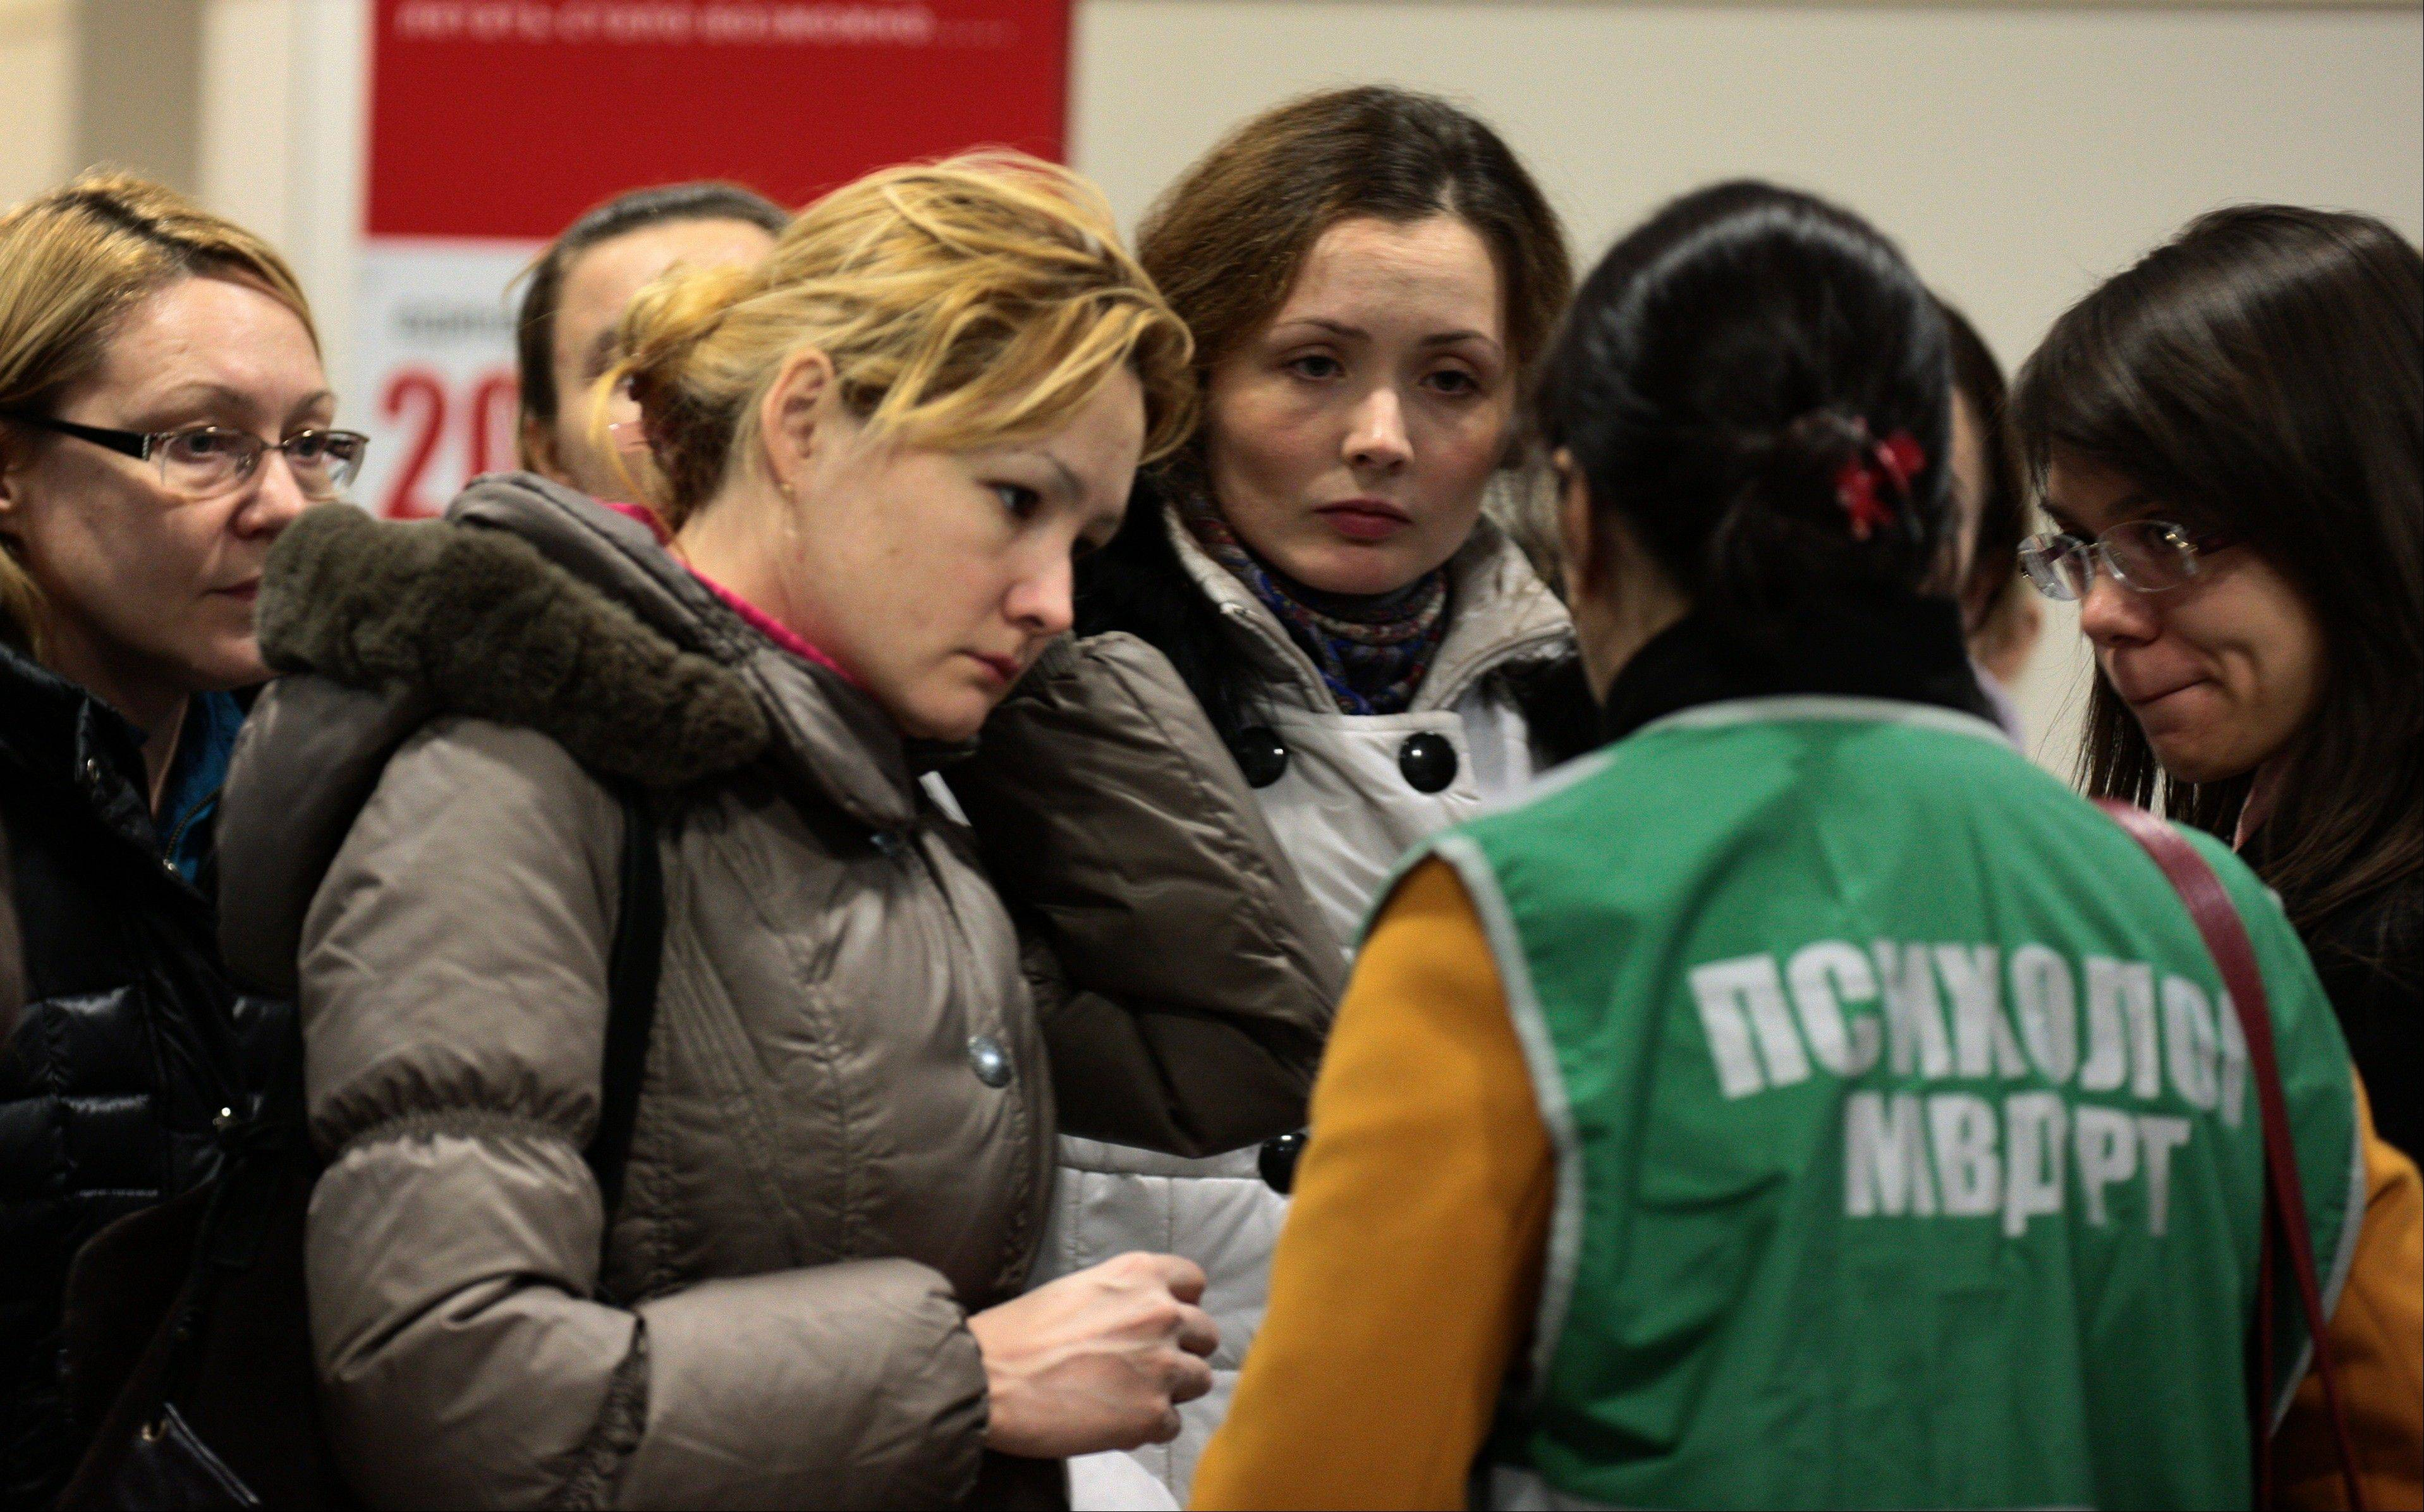 A psychologist at the airport speaks to relatives and friends of those who were aboard the Russian passenger airliner Boeing 737 that crashed in Kazan, about 450 miles east of Moscow, Sunday, Nov. 17, 2013.